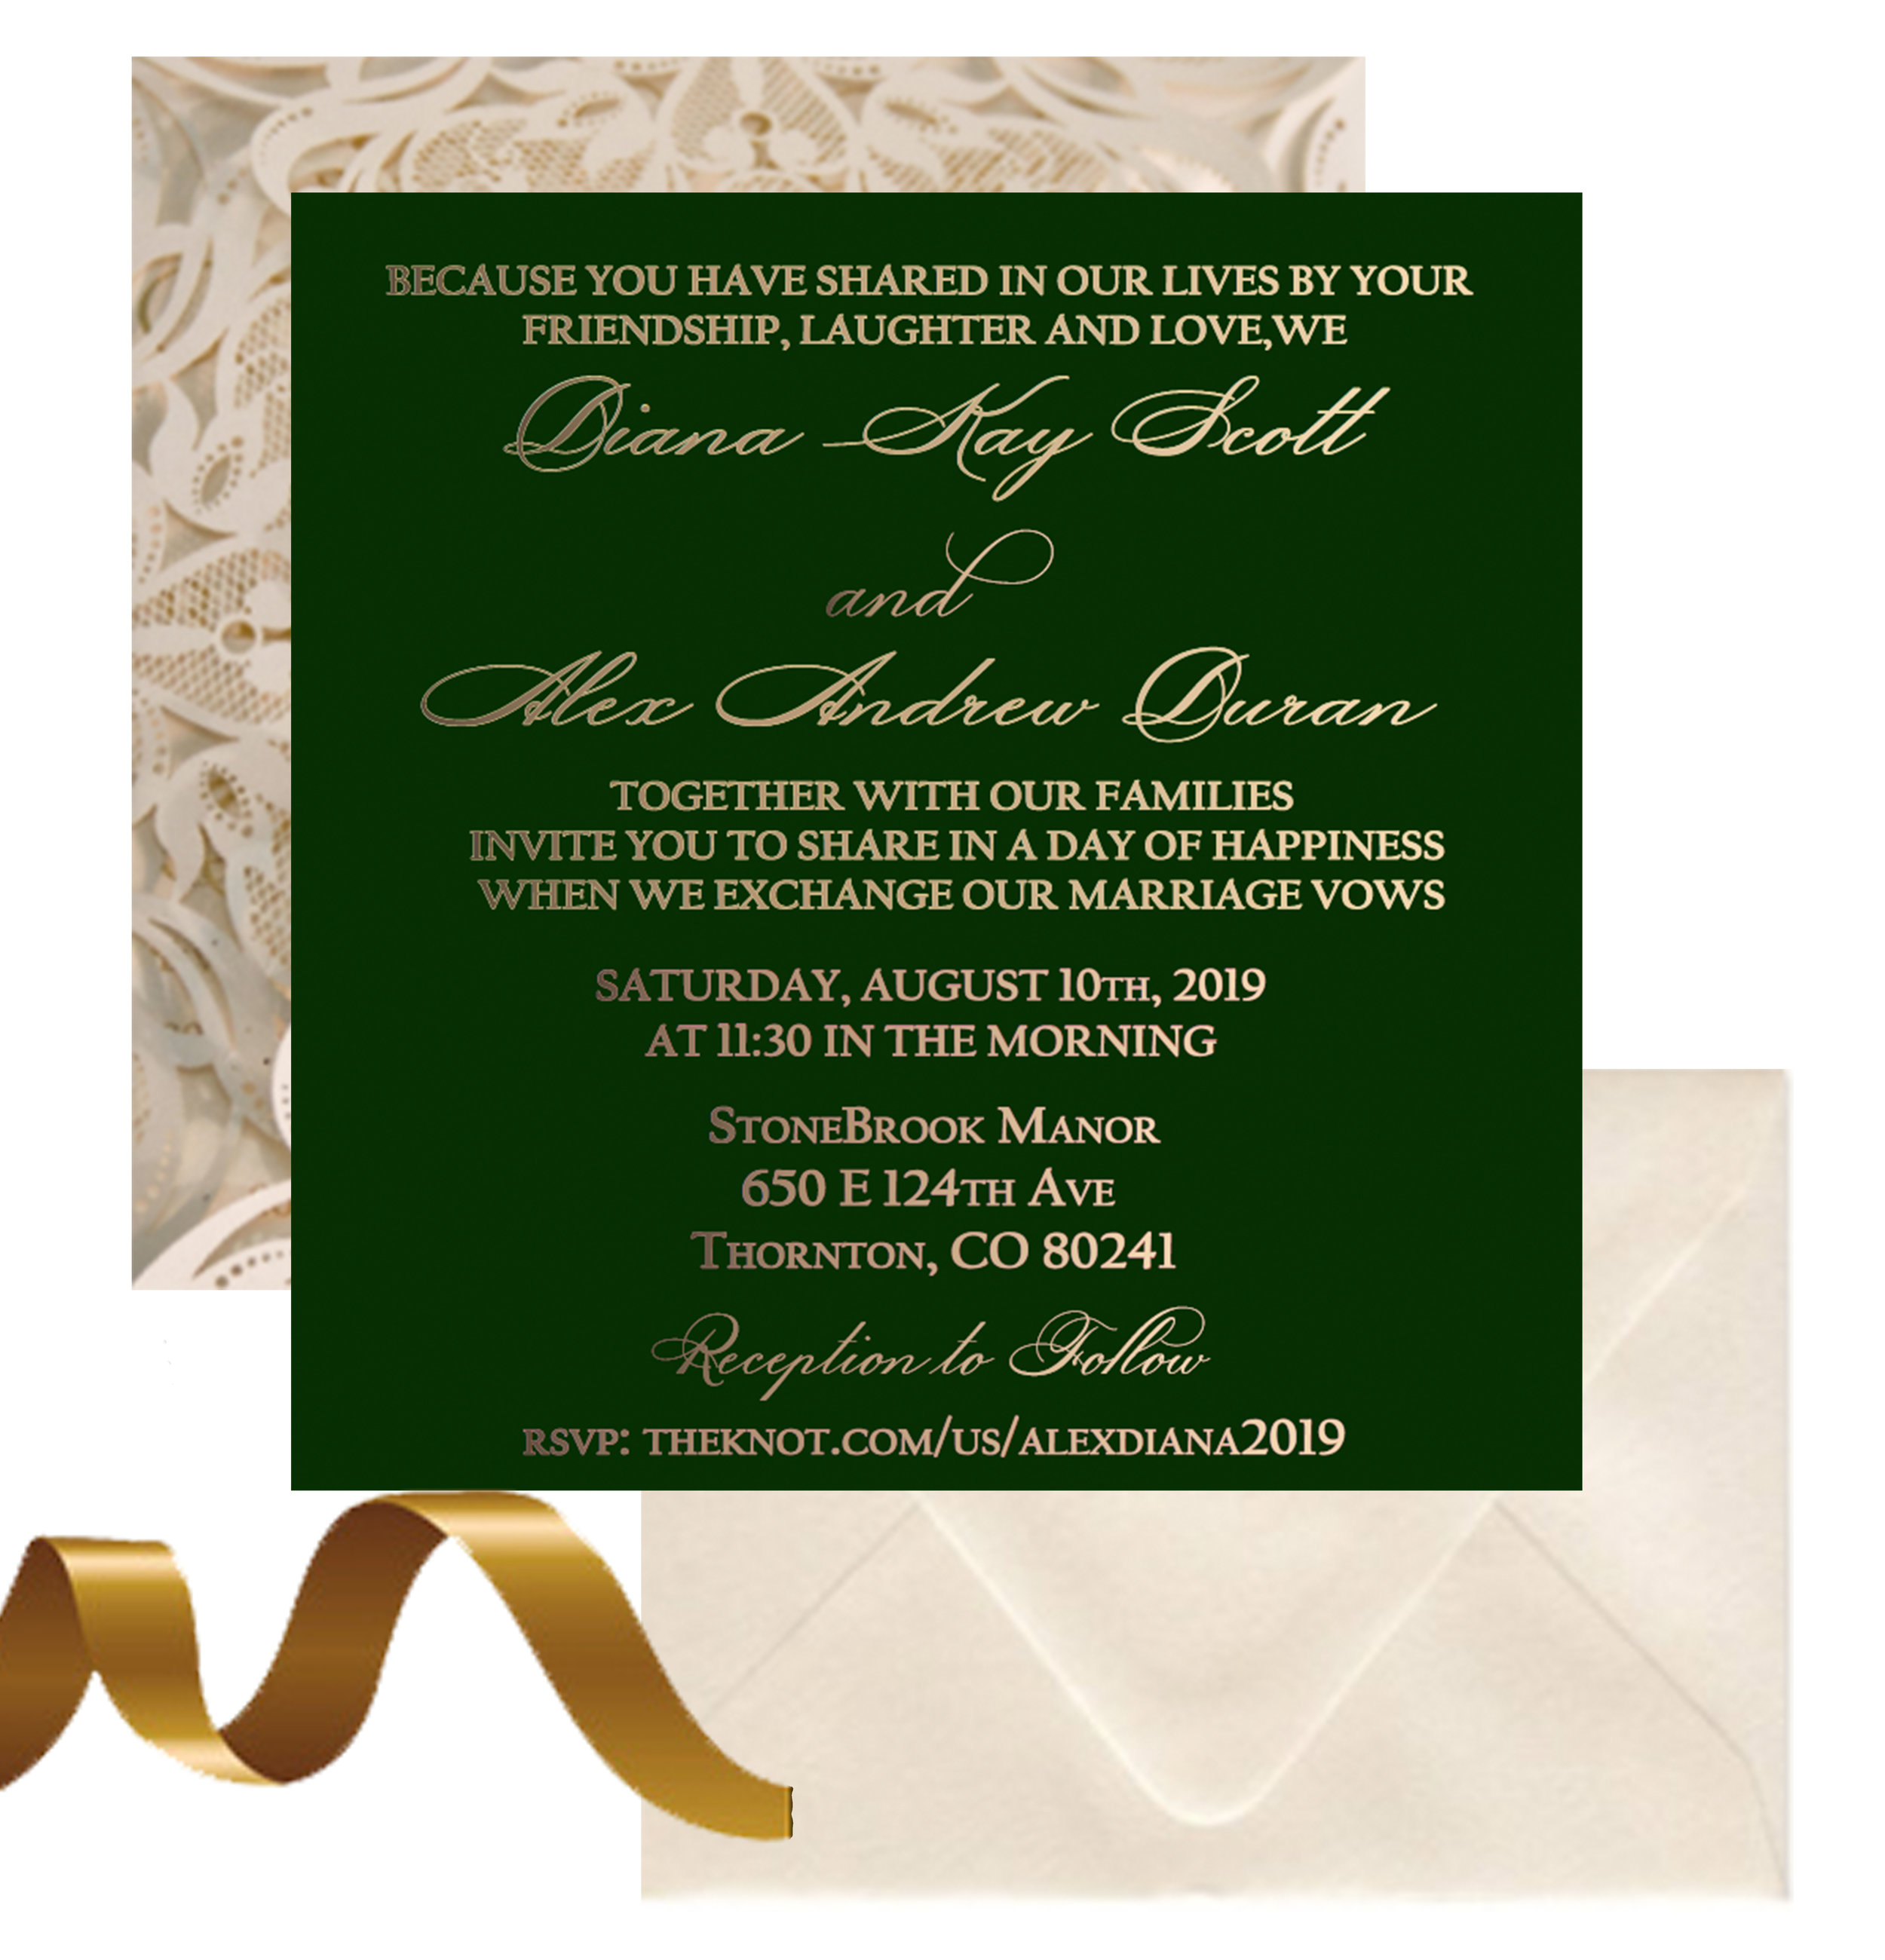 """Couple:  Diana Scott & Alex Duran   Ordered On : 3/22/19 Type: A Touch of Gold, (with foil upgrade)   Envelope Colors:  Opal (Metallic)   Upgrade : Gold Foil, Requested to keep custom plates   Quantity:  125   Paper Color:  Forest Green Paper   Texture:  Savoy/Standard   Envelope Liner:  None   Ribbon : Classic Gold ⅝""""   Laser Cut:  #3 beige/ivory   Notes: Date changed, revision #1"""